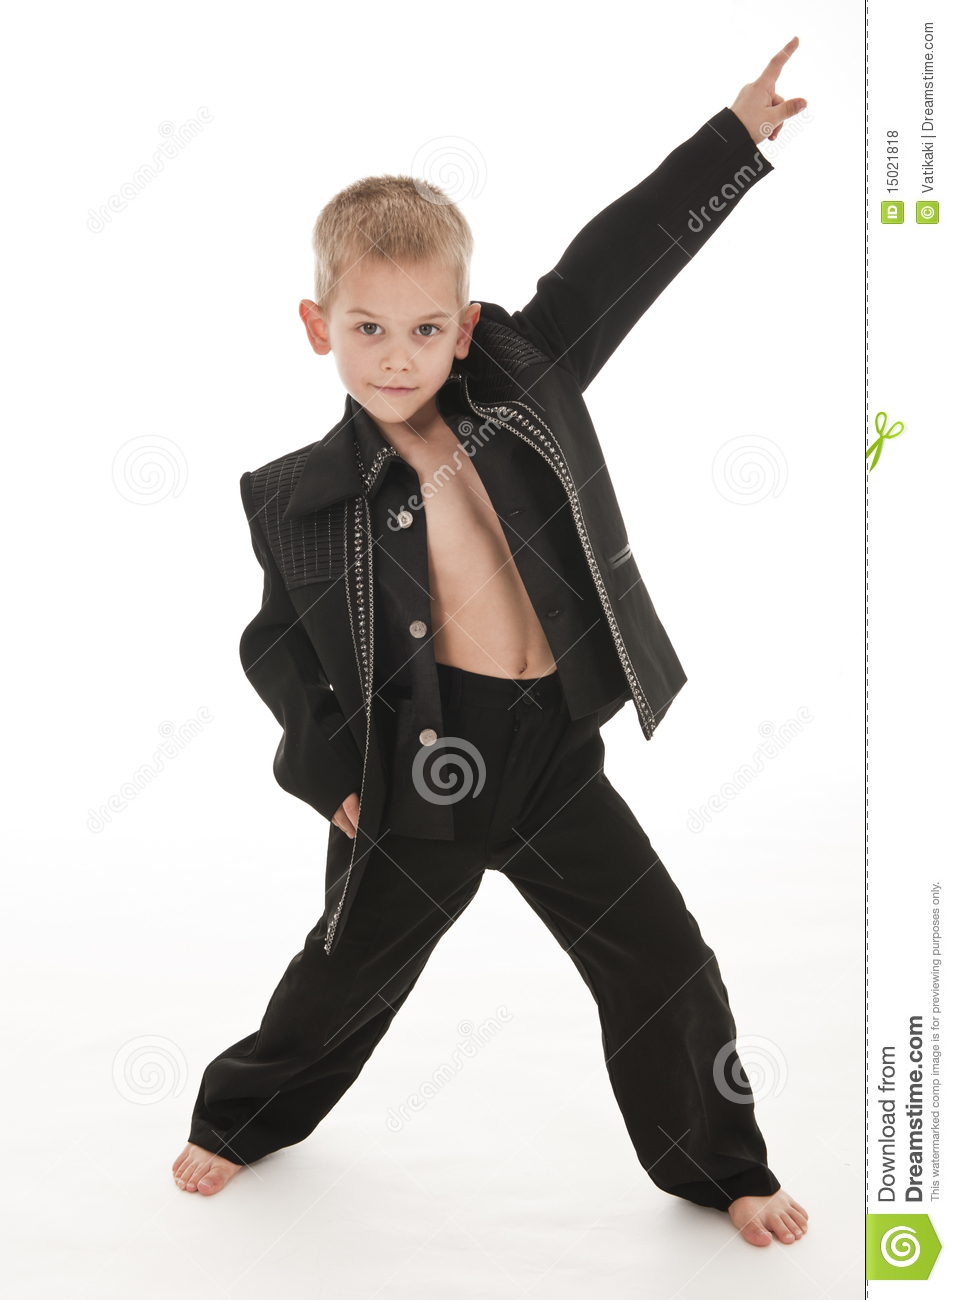 a7540b7233a7 Rockstar Boy Stock Images - Download 202 Royalty Free Photos